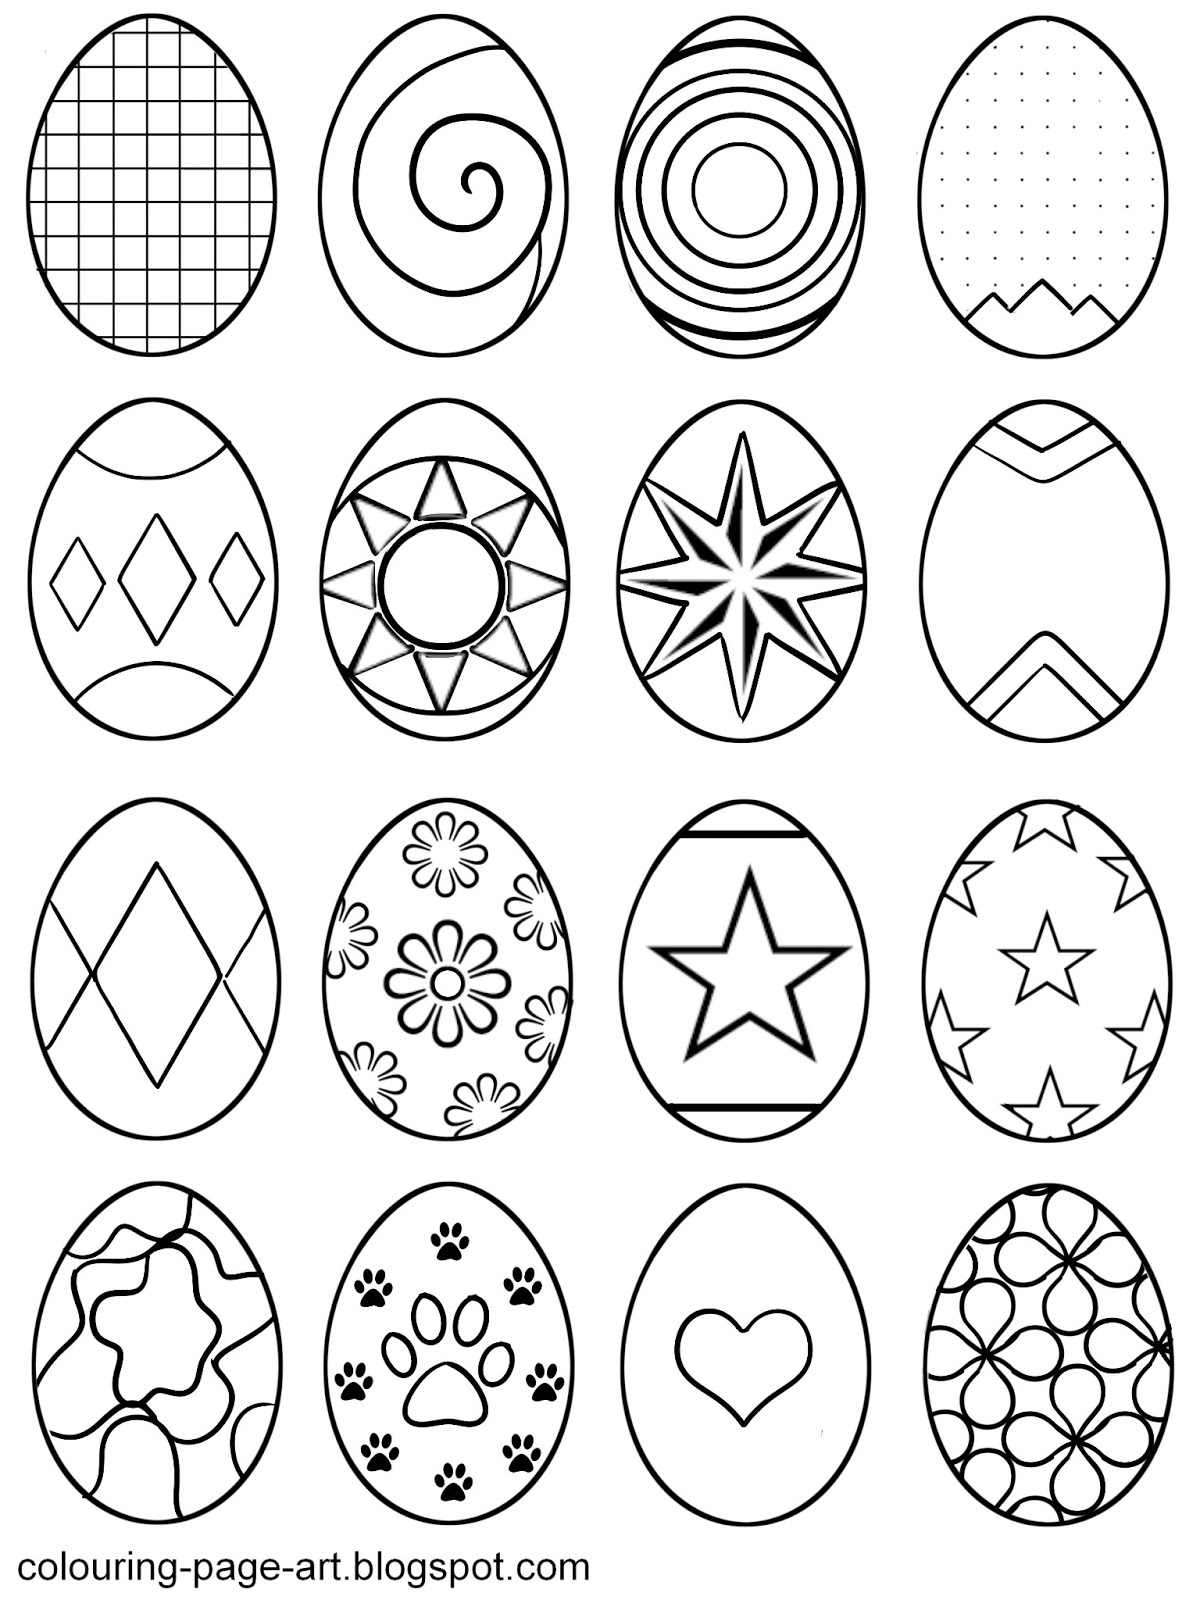 coloring pages small | Easter Egg Printable Colouring Pages | hubpages